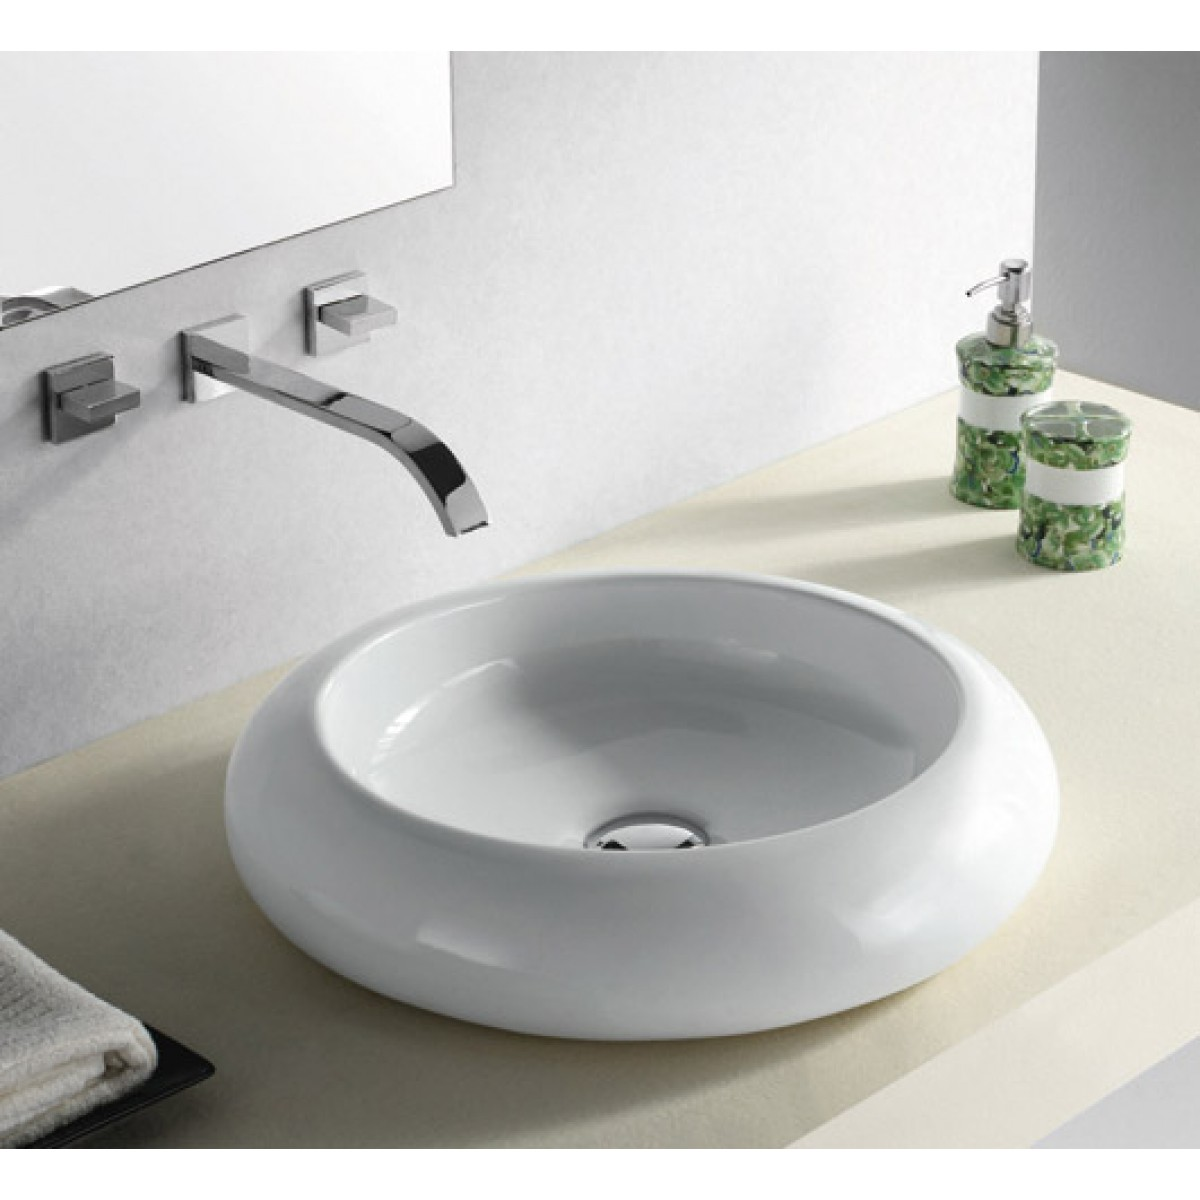 rounded edge white black porcelain ceramic countertop bathroom vessel sink 191